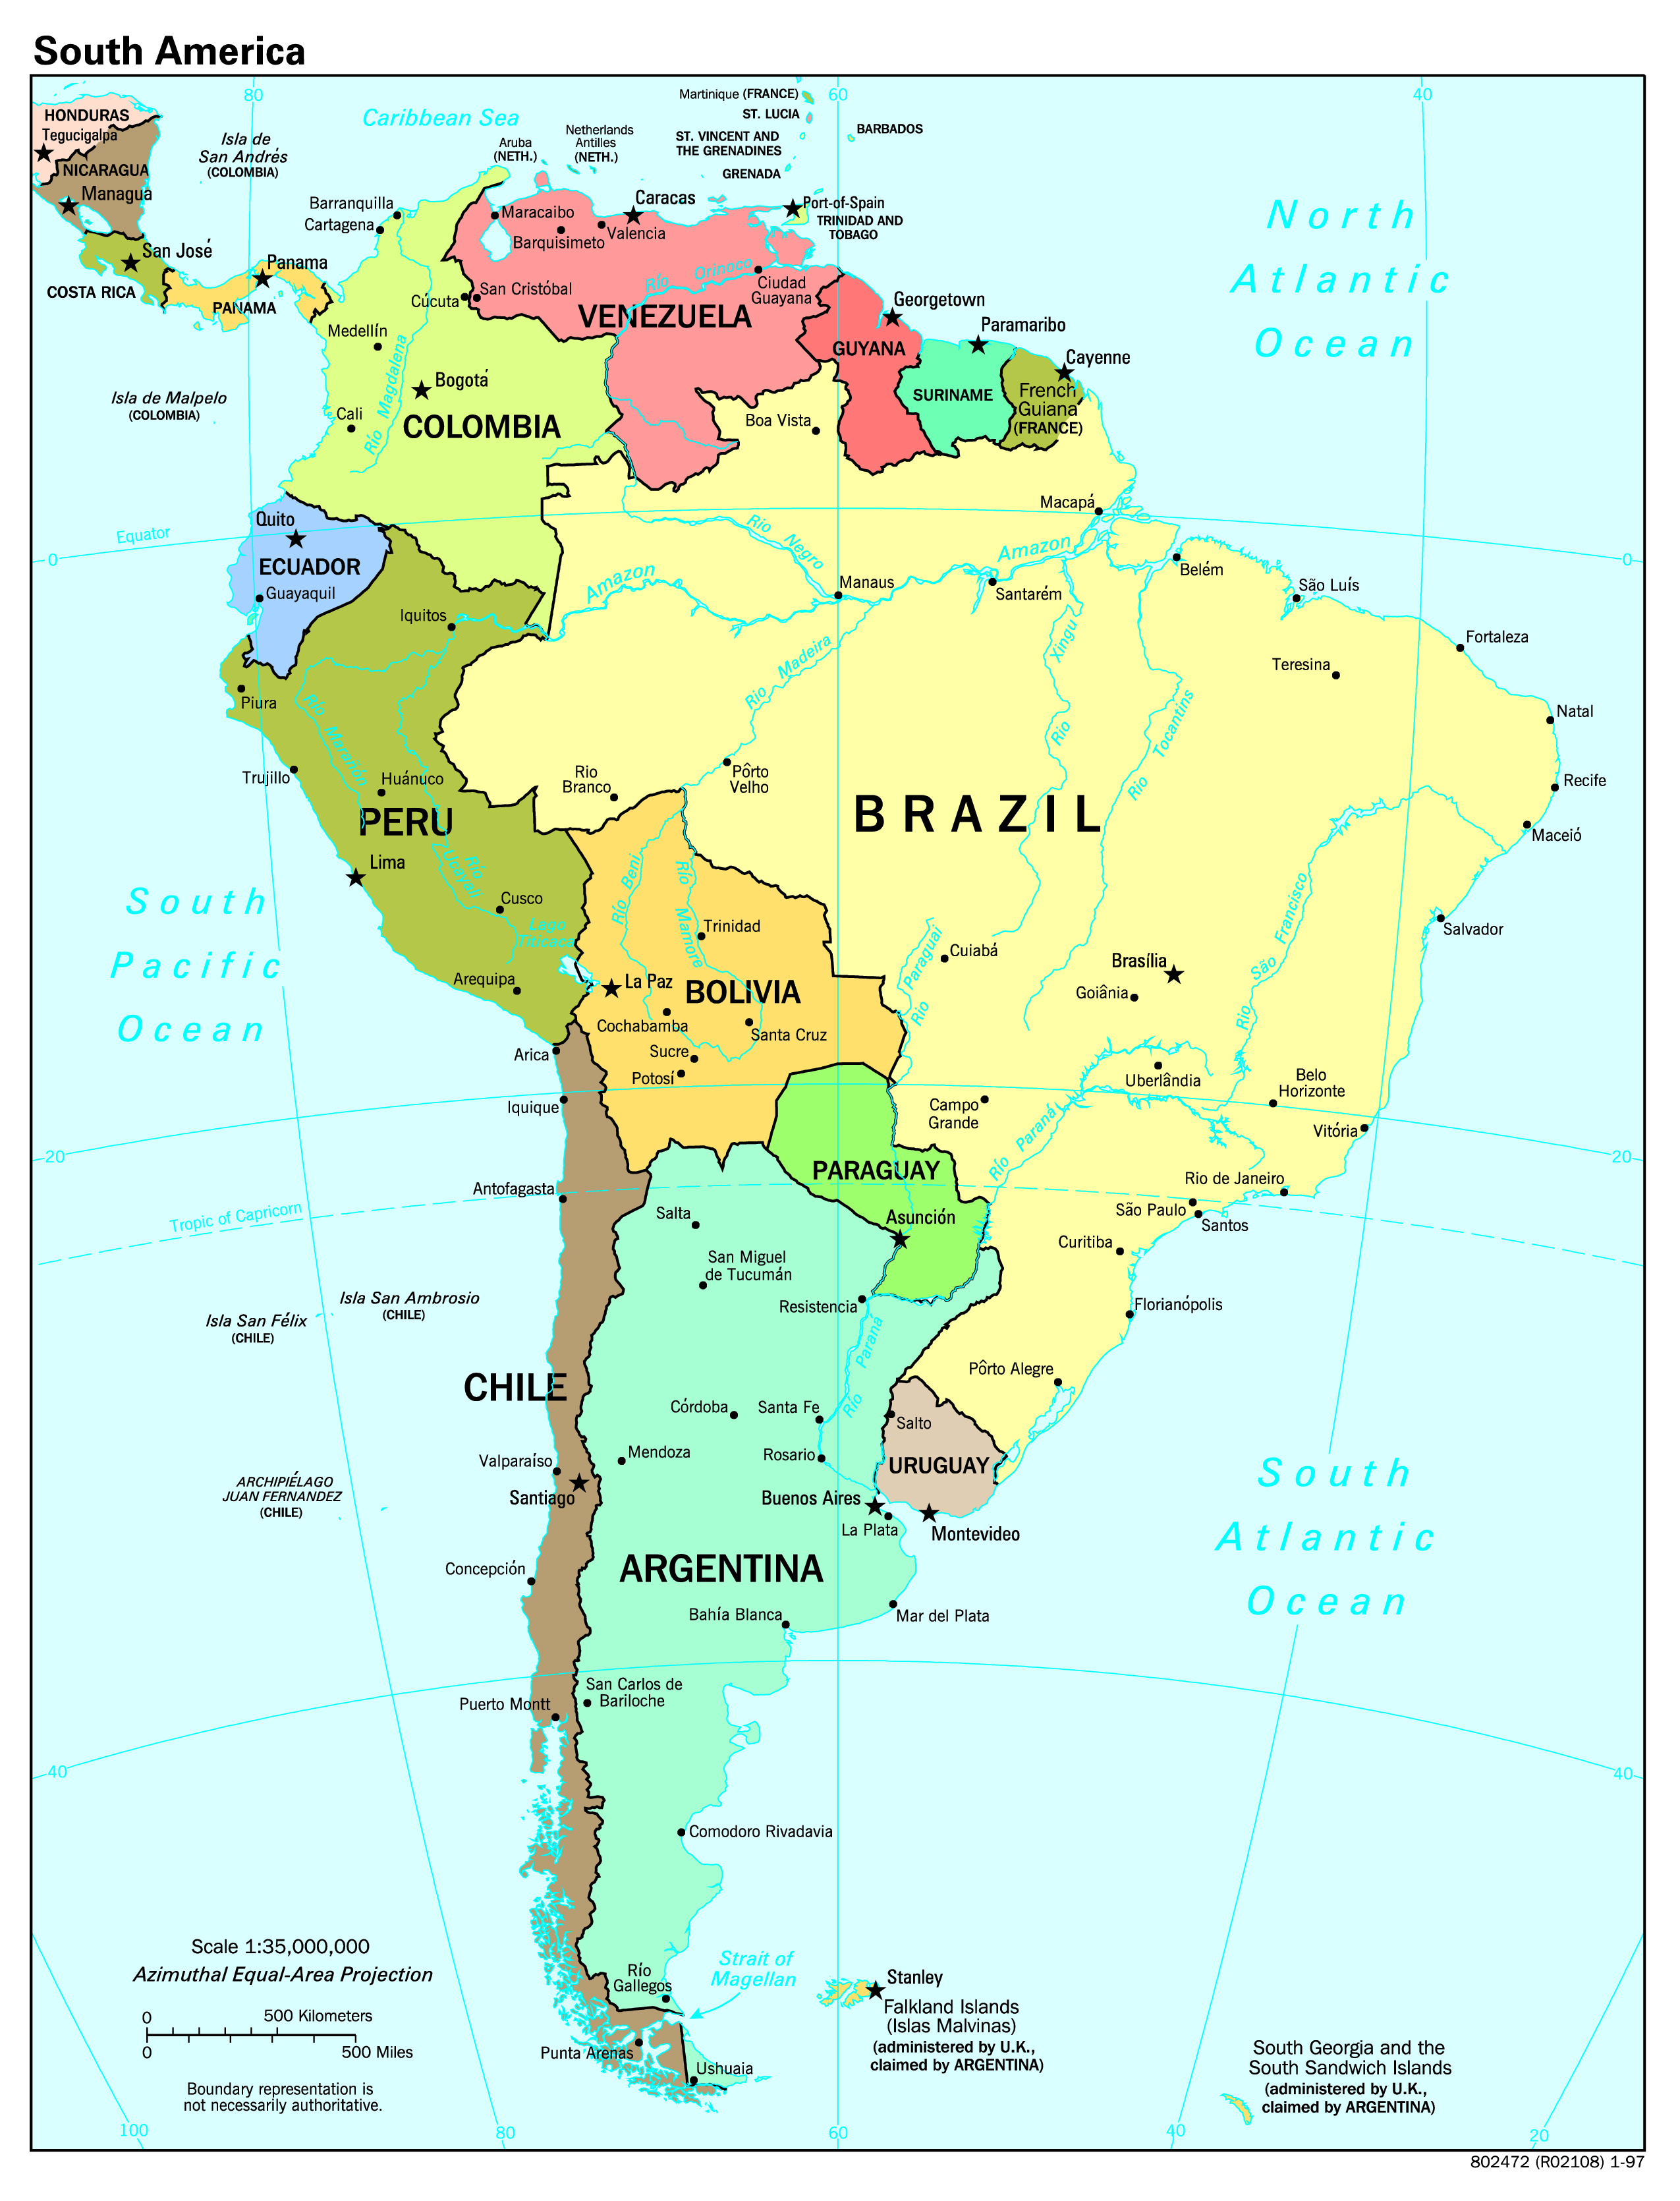 Large Scale Political Map Of South America With Major Cities - South america cities map